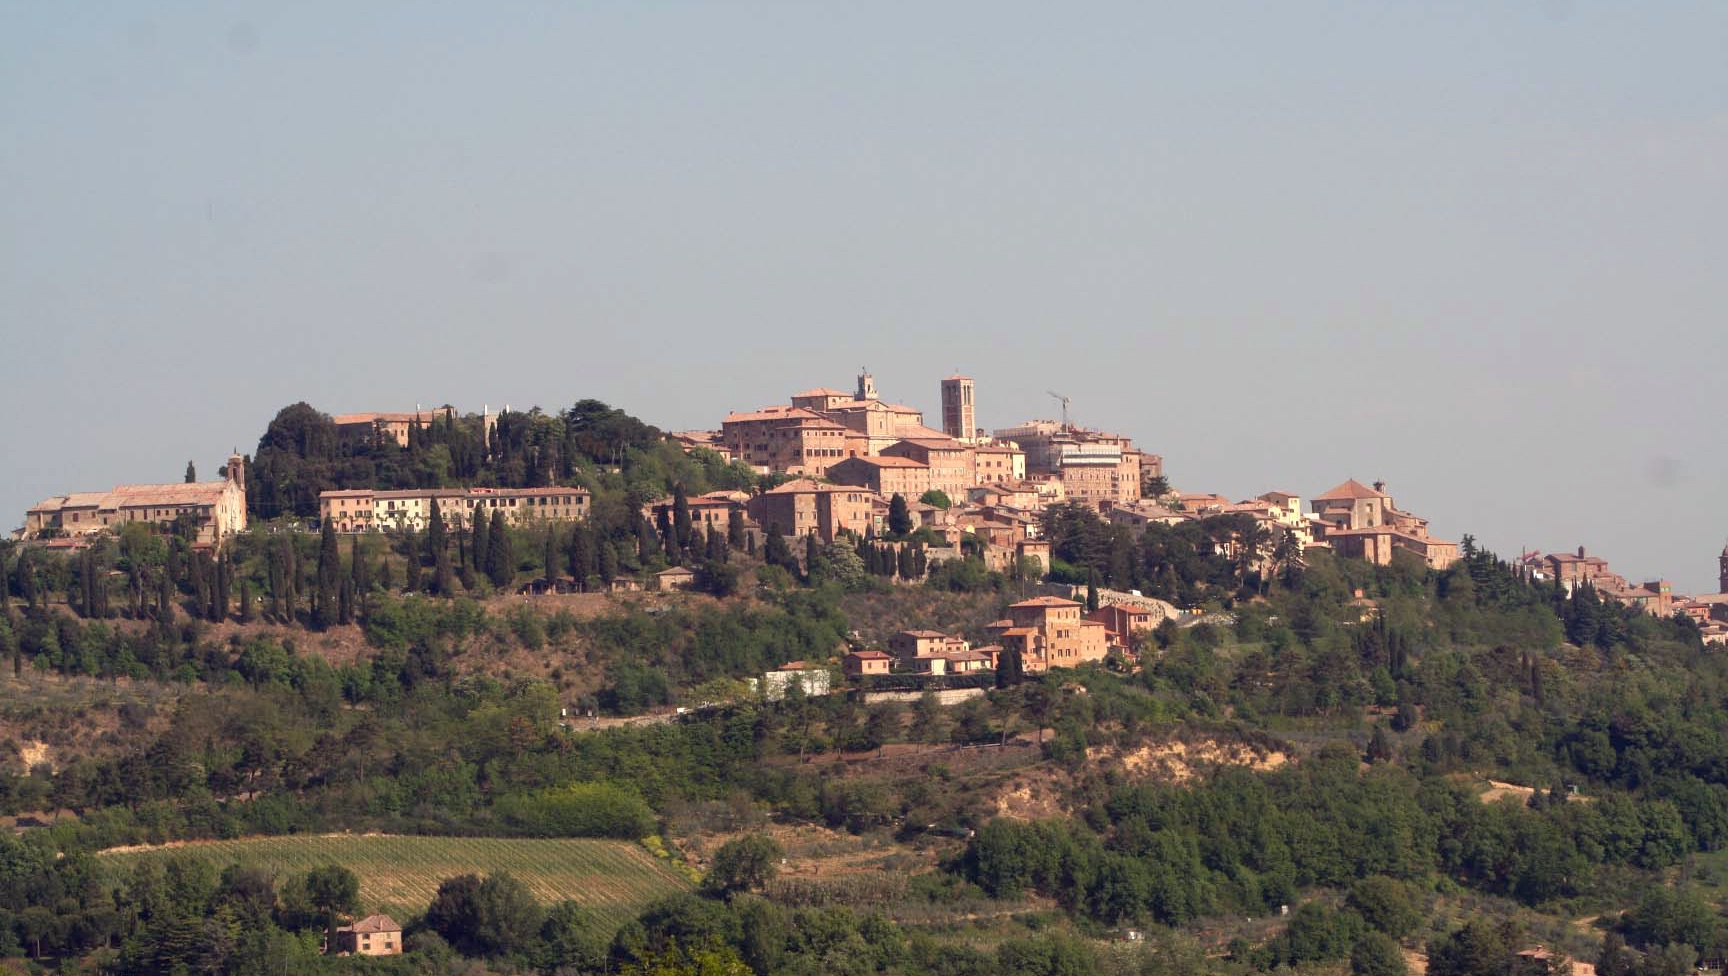 Montepulciano Book 3 Chapter 8: The Life and Times of Gina (Born 1924)